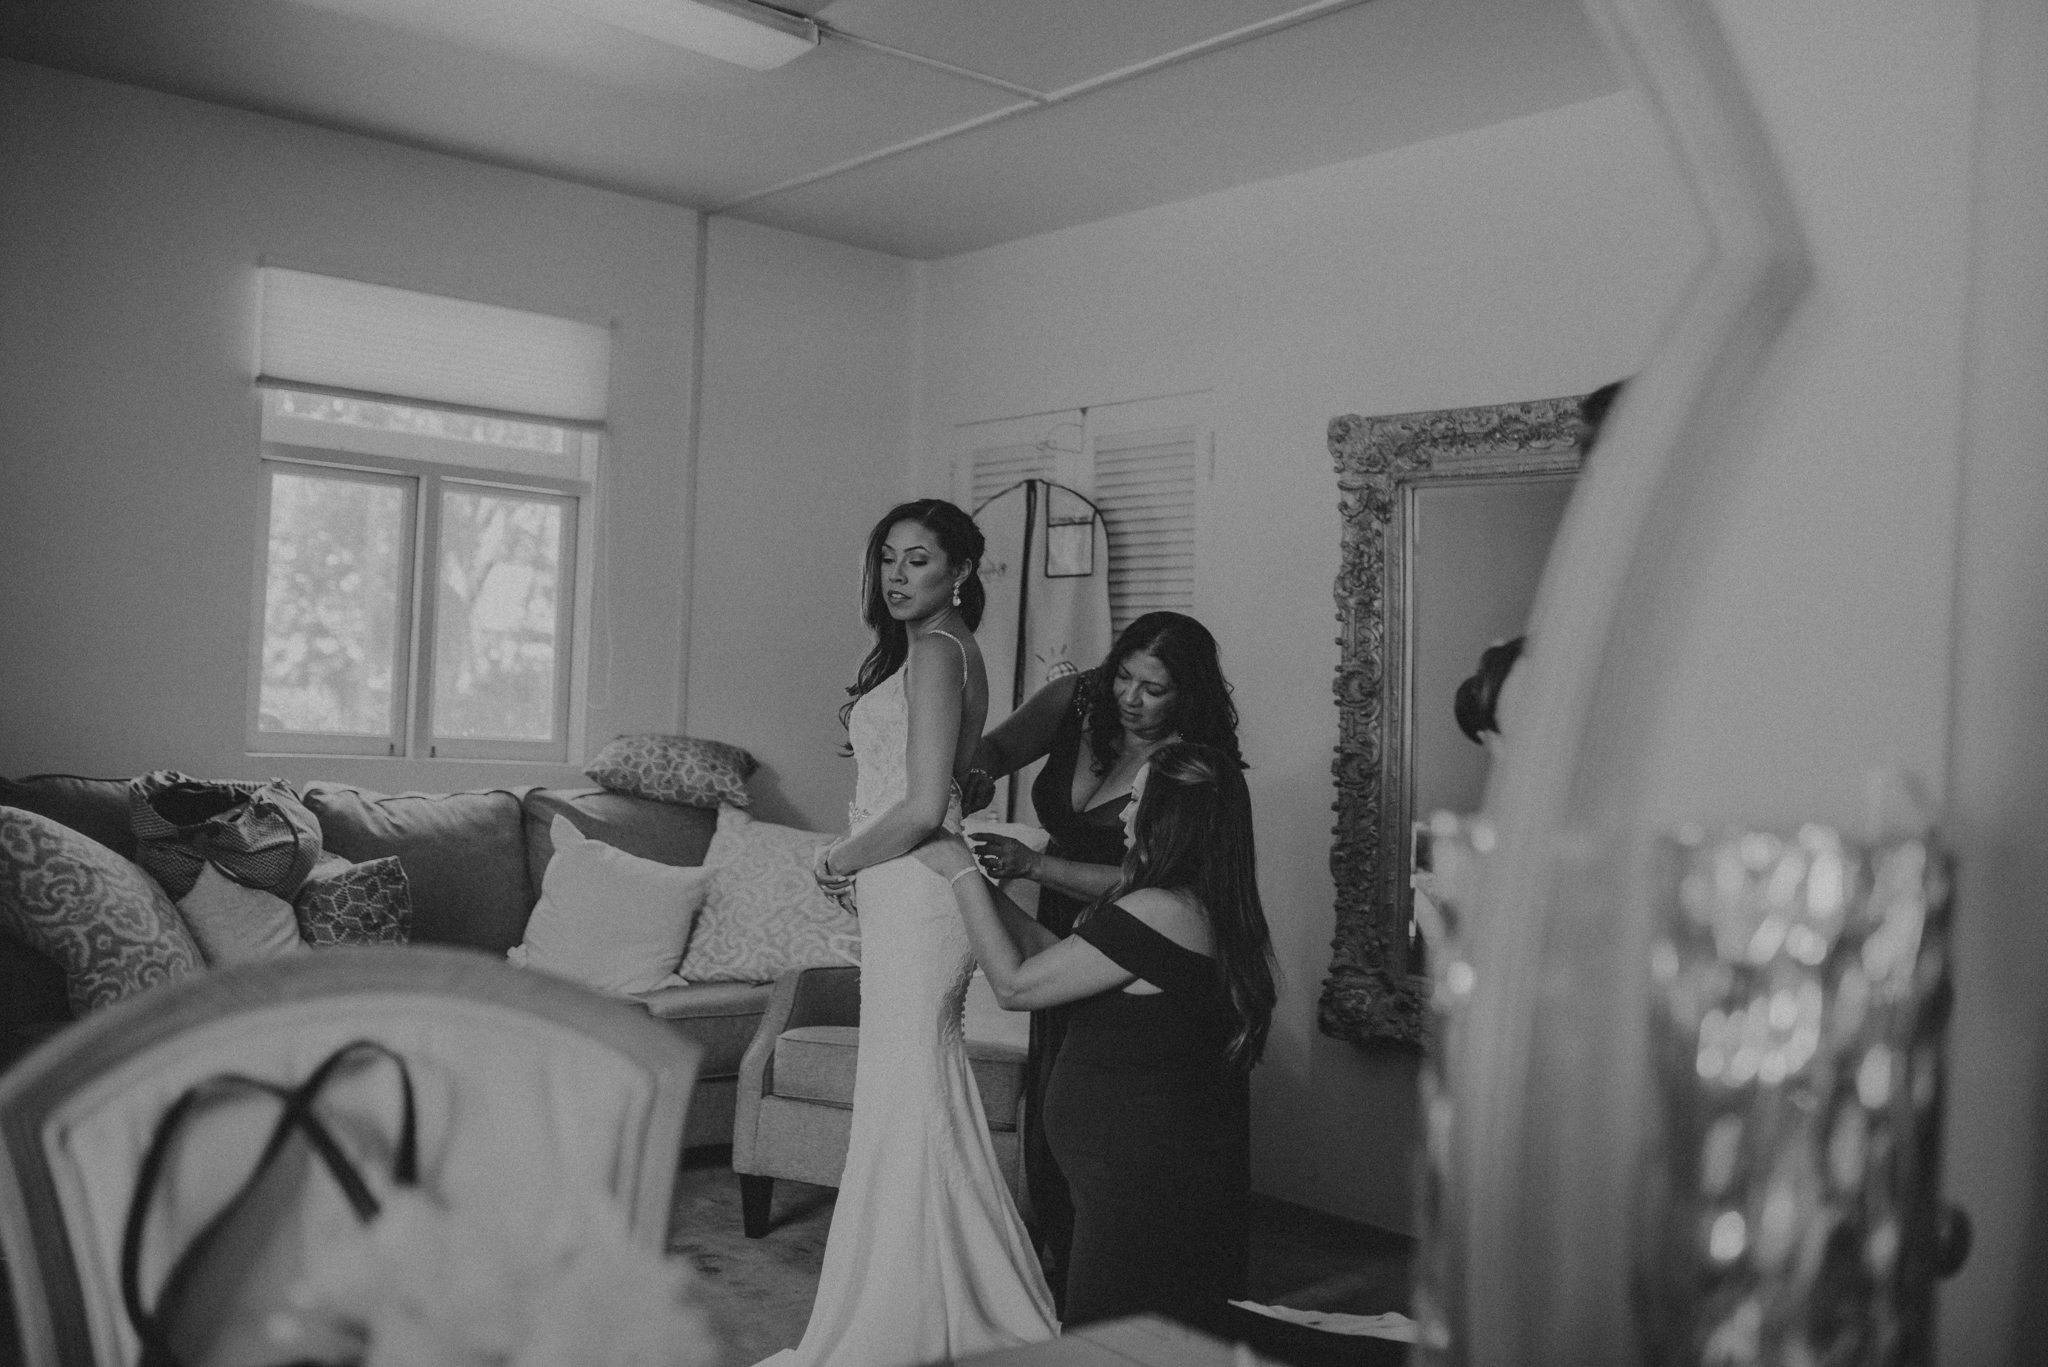 Wedding Photographer in Los Angeles - The Clarke Estate Wedding - IsaiahAndTaylor.com-017.jpg